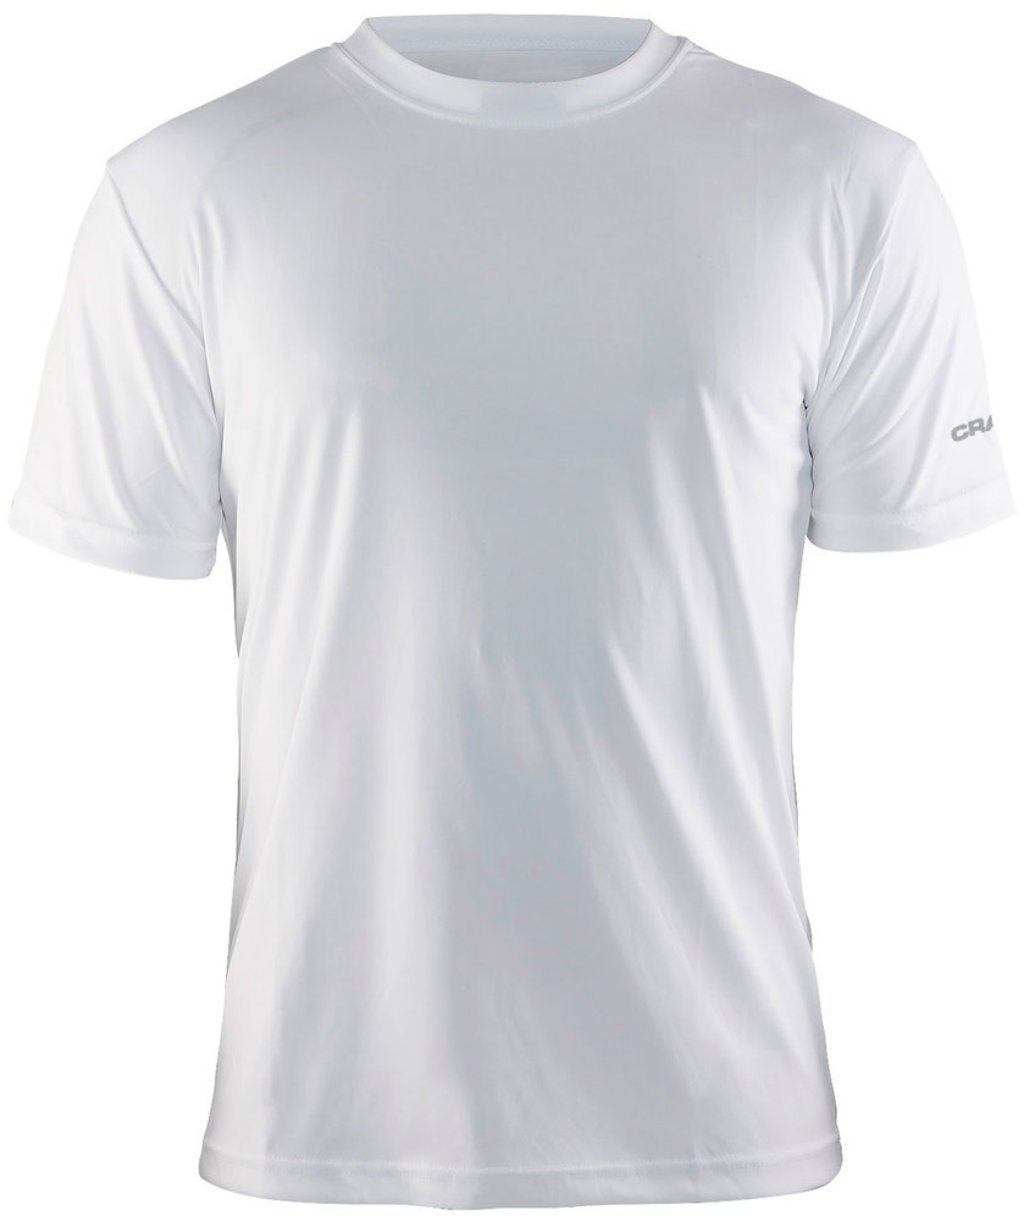 Craft T-shirt, White